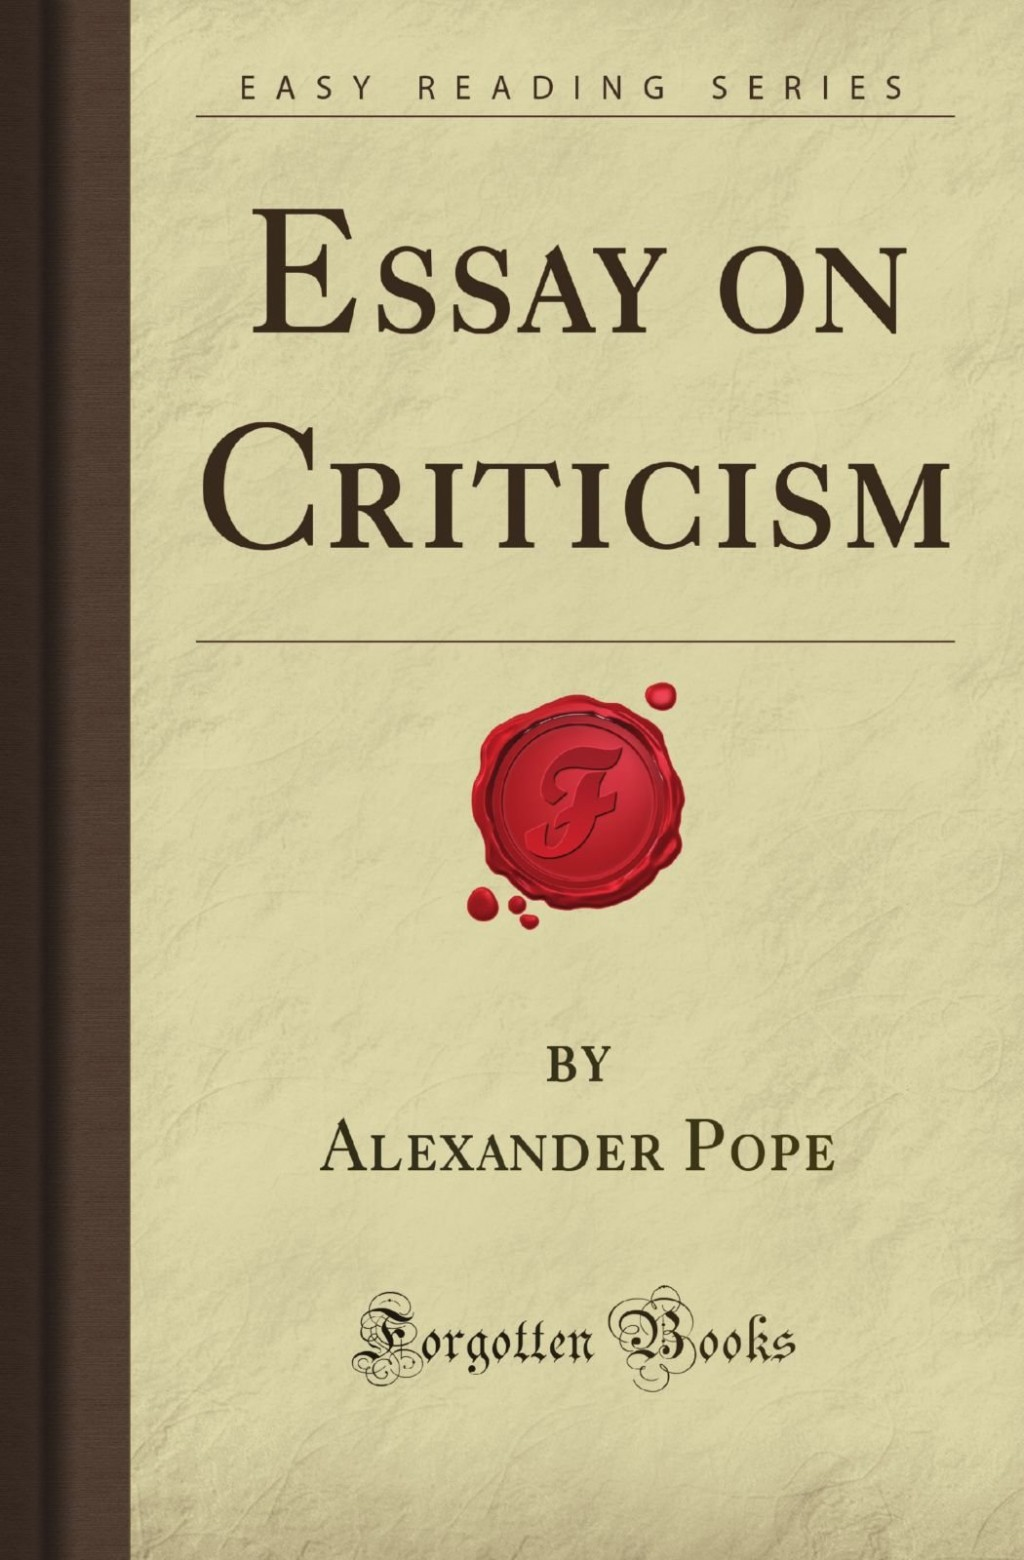 002 Essay On Criticism Example Singular Alexander Pope Analysis Part 2 Summary Large